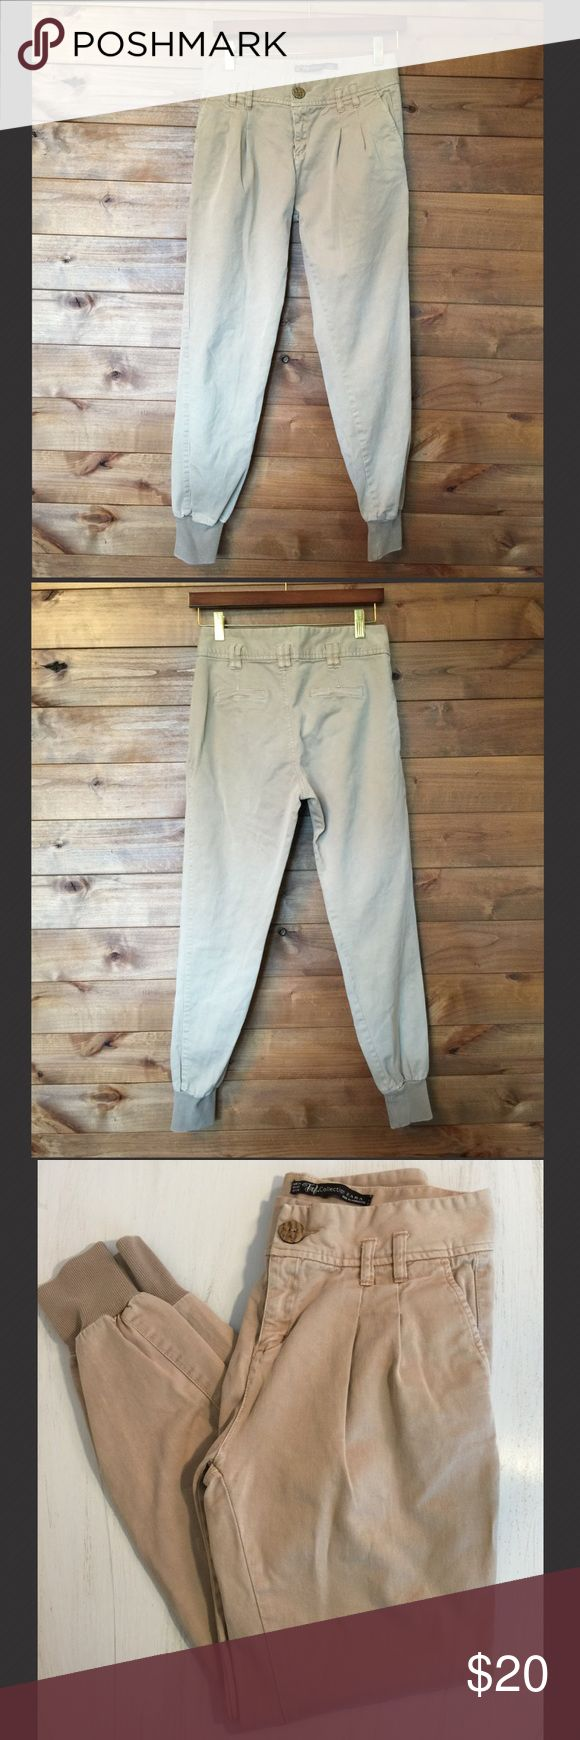 "Zara Woman's Chino Jogger Pants These comfy khaki joggers have a workwear inspired fabric gives them an effortless laidback look. High waisted with belt loops makes them easy to dress up. In excellent used condition. Size: 2 Inseam: 28"" Waist: 14"" Zara Pants"